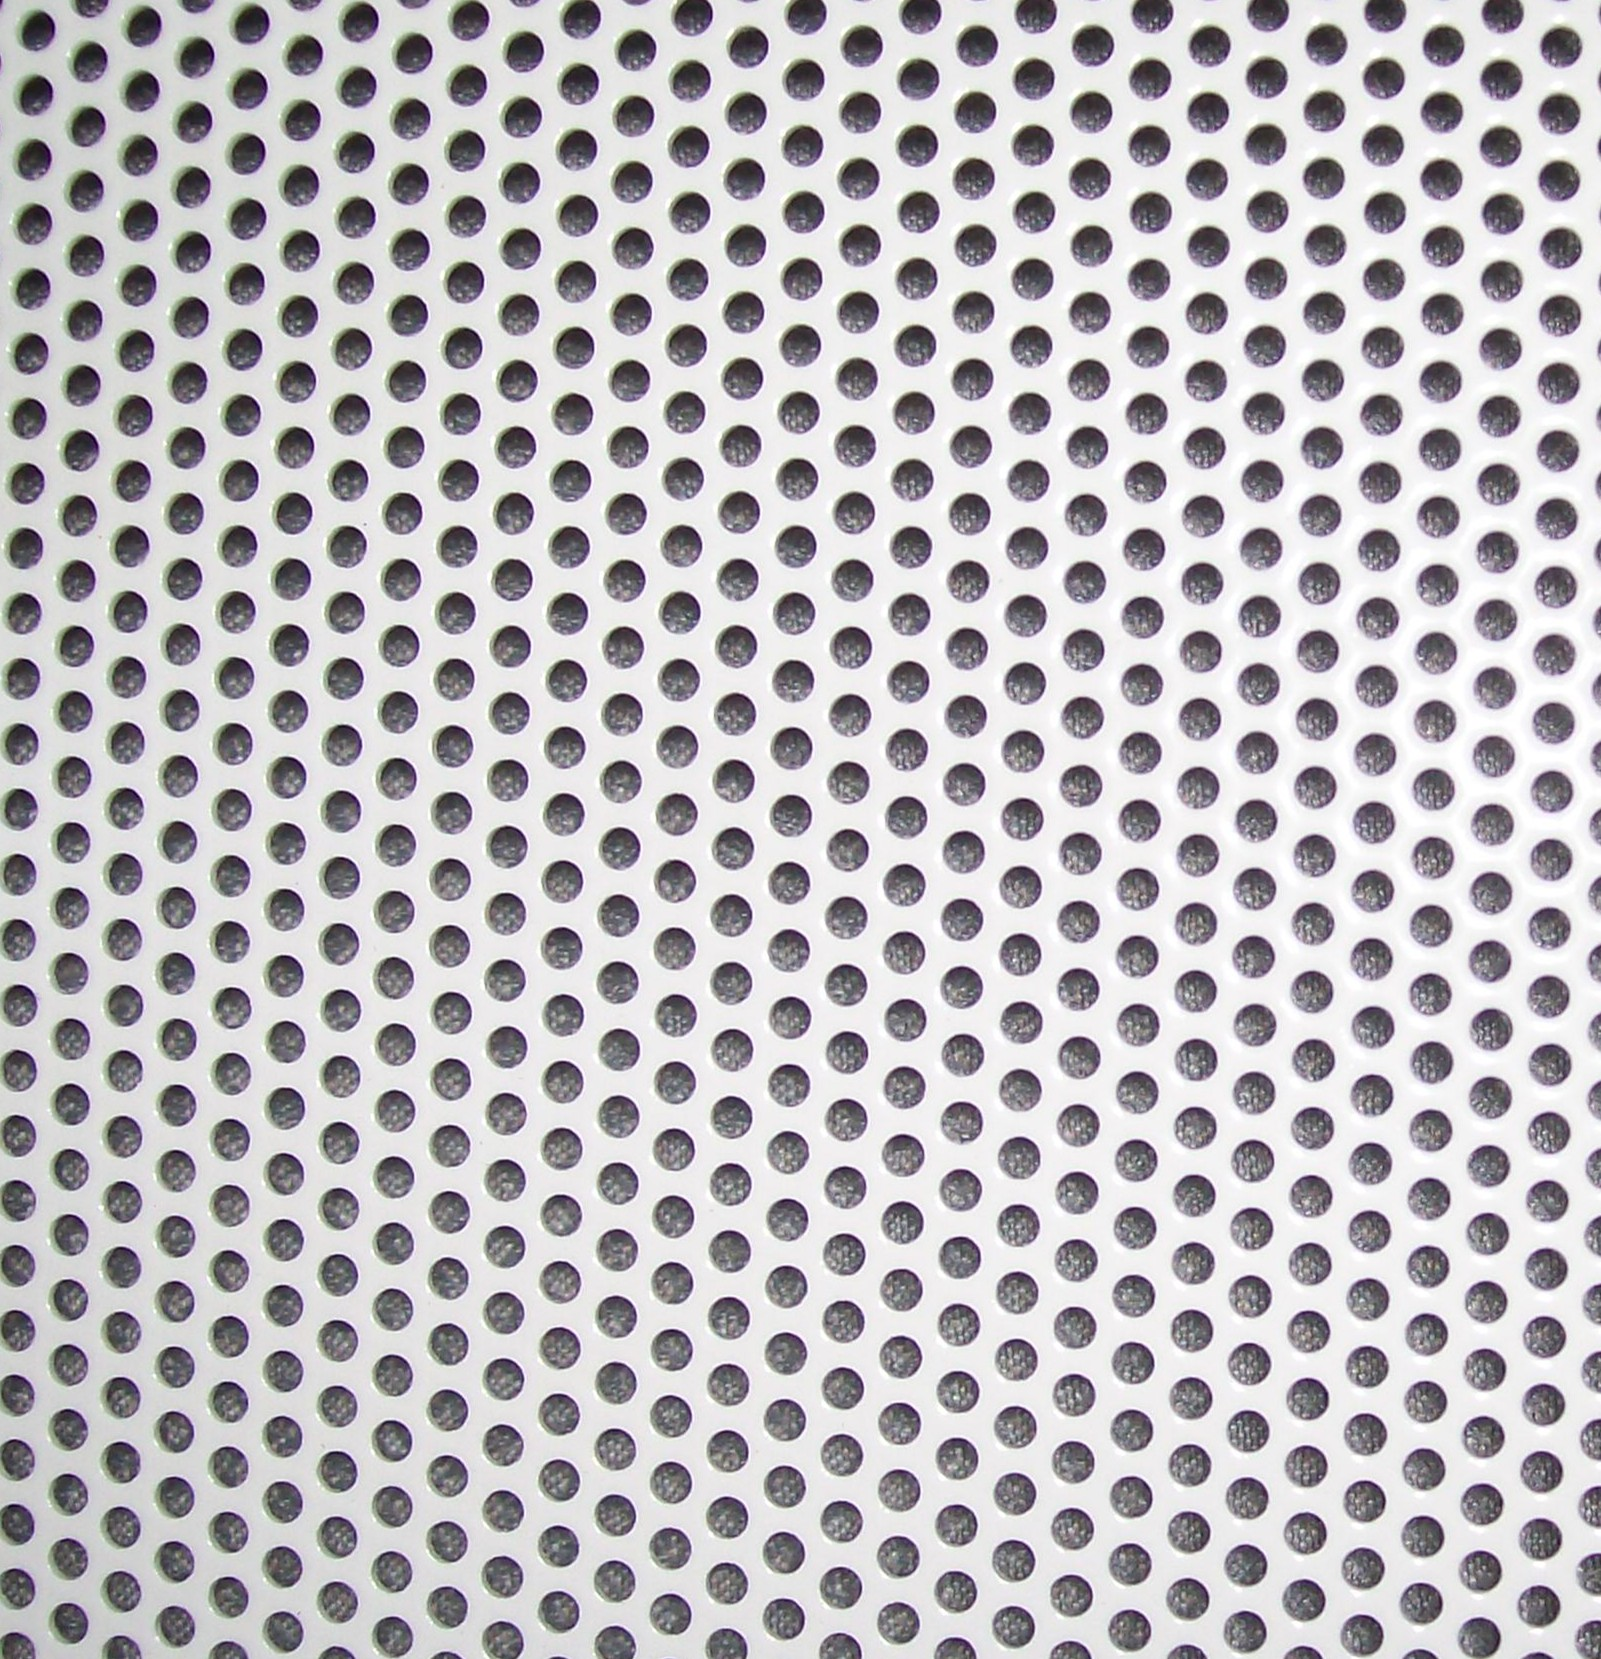 Perforated Aluminum Panels : Perforated metal panels imgkid the image kid